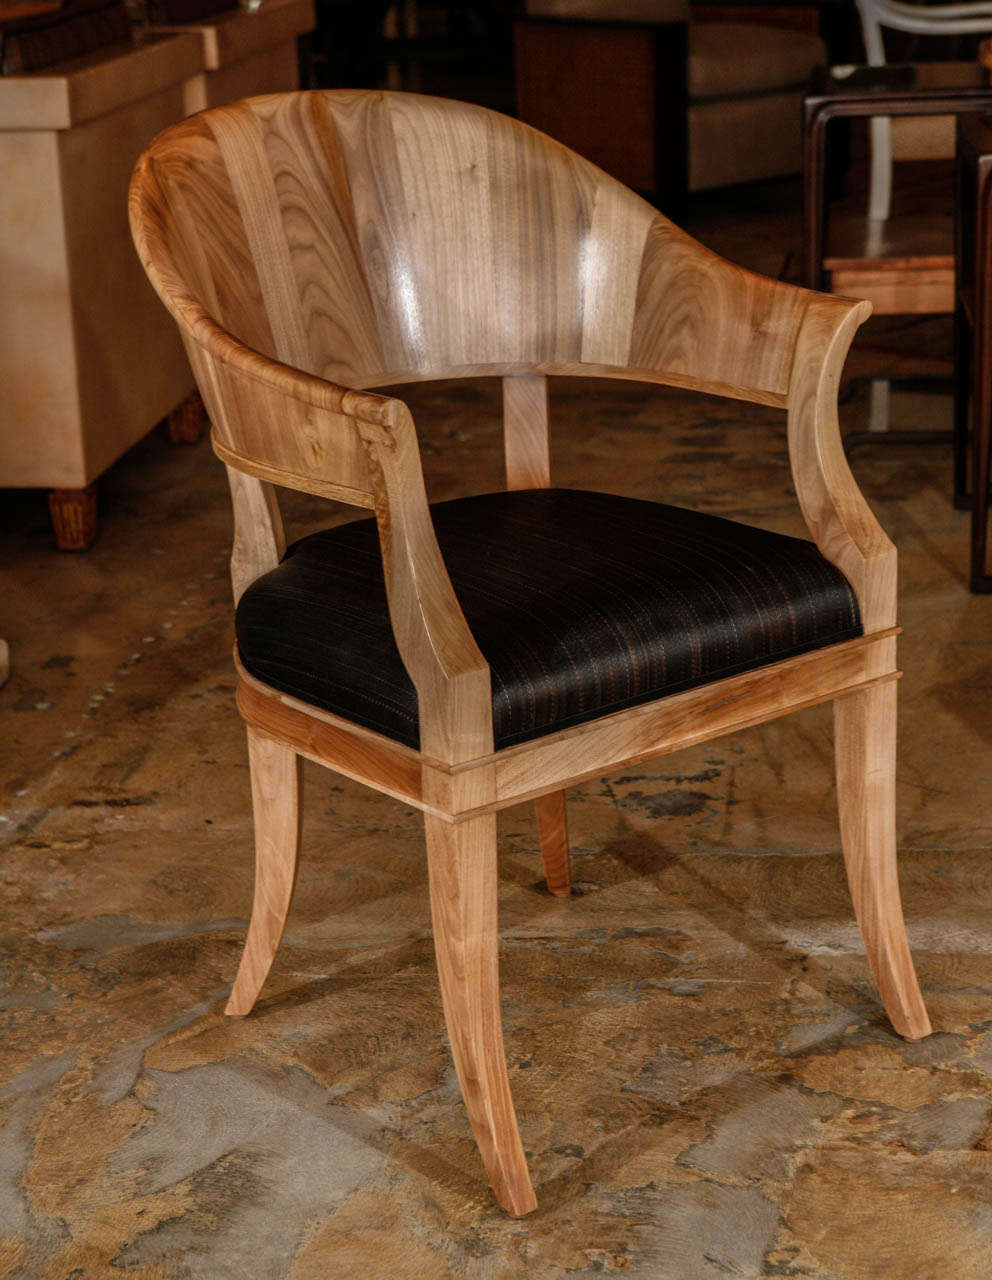 Modern, French Art Deco inspired bleached walnut chairs upholstered in brown horsehair shown as pair. By order. As shown have sold. Price quoted is per each chair. Double bleached walnut, seat upholstered in horsehair. Seat depth to inside back is